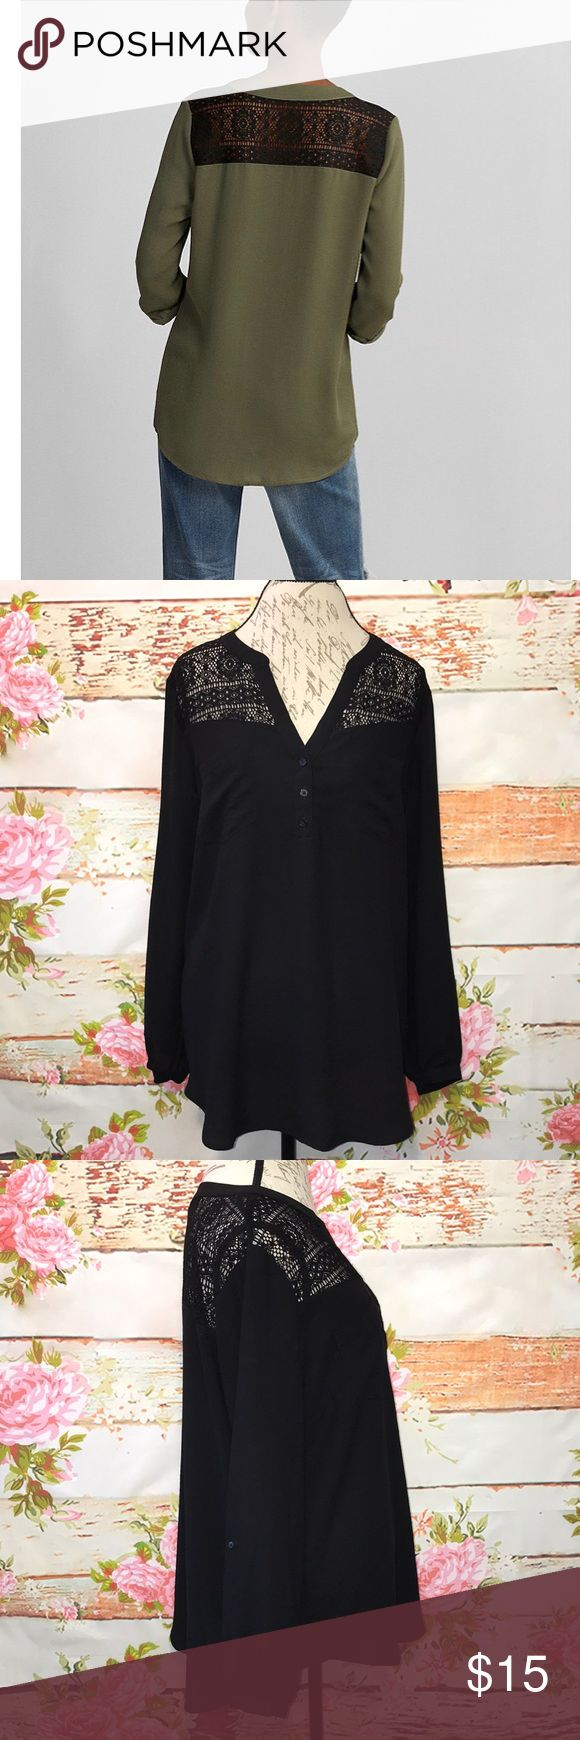 """Express Lace Yoke V-Neck Blouse Express size XL Lace Yoke Deep V-Neck Blouse in black. This blouse's softness & mix of textures are just so crush-worthy. The lace of the shoulder yoke, deep v-neck, drapey sleeves & sumptuous lightweight fabric add up to one versatile, feminine look. V-neck with 3 buttons below. Dual breast pockets. Puckered sleeve ends with roll tabs. Rounded bottom hem. 100% Polyester. Oversized fit. Bust: 22"""", Length: 29"""". EUC! Retail: $39.90 Express Tops Blouses"""